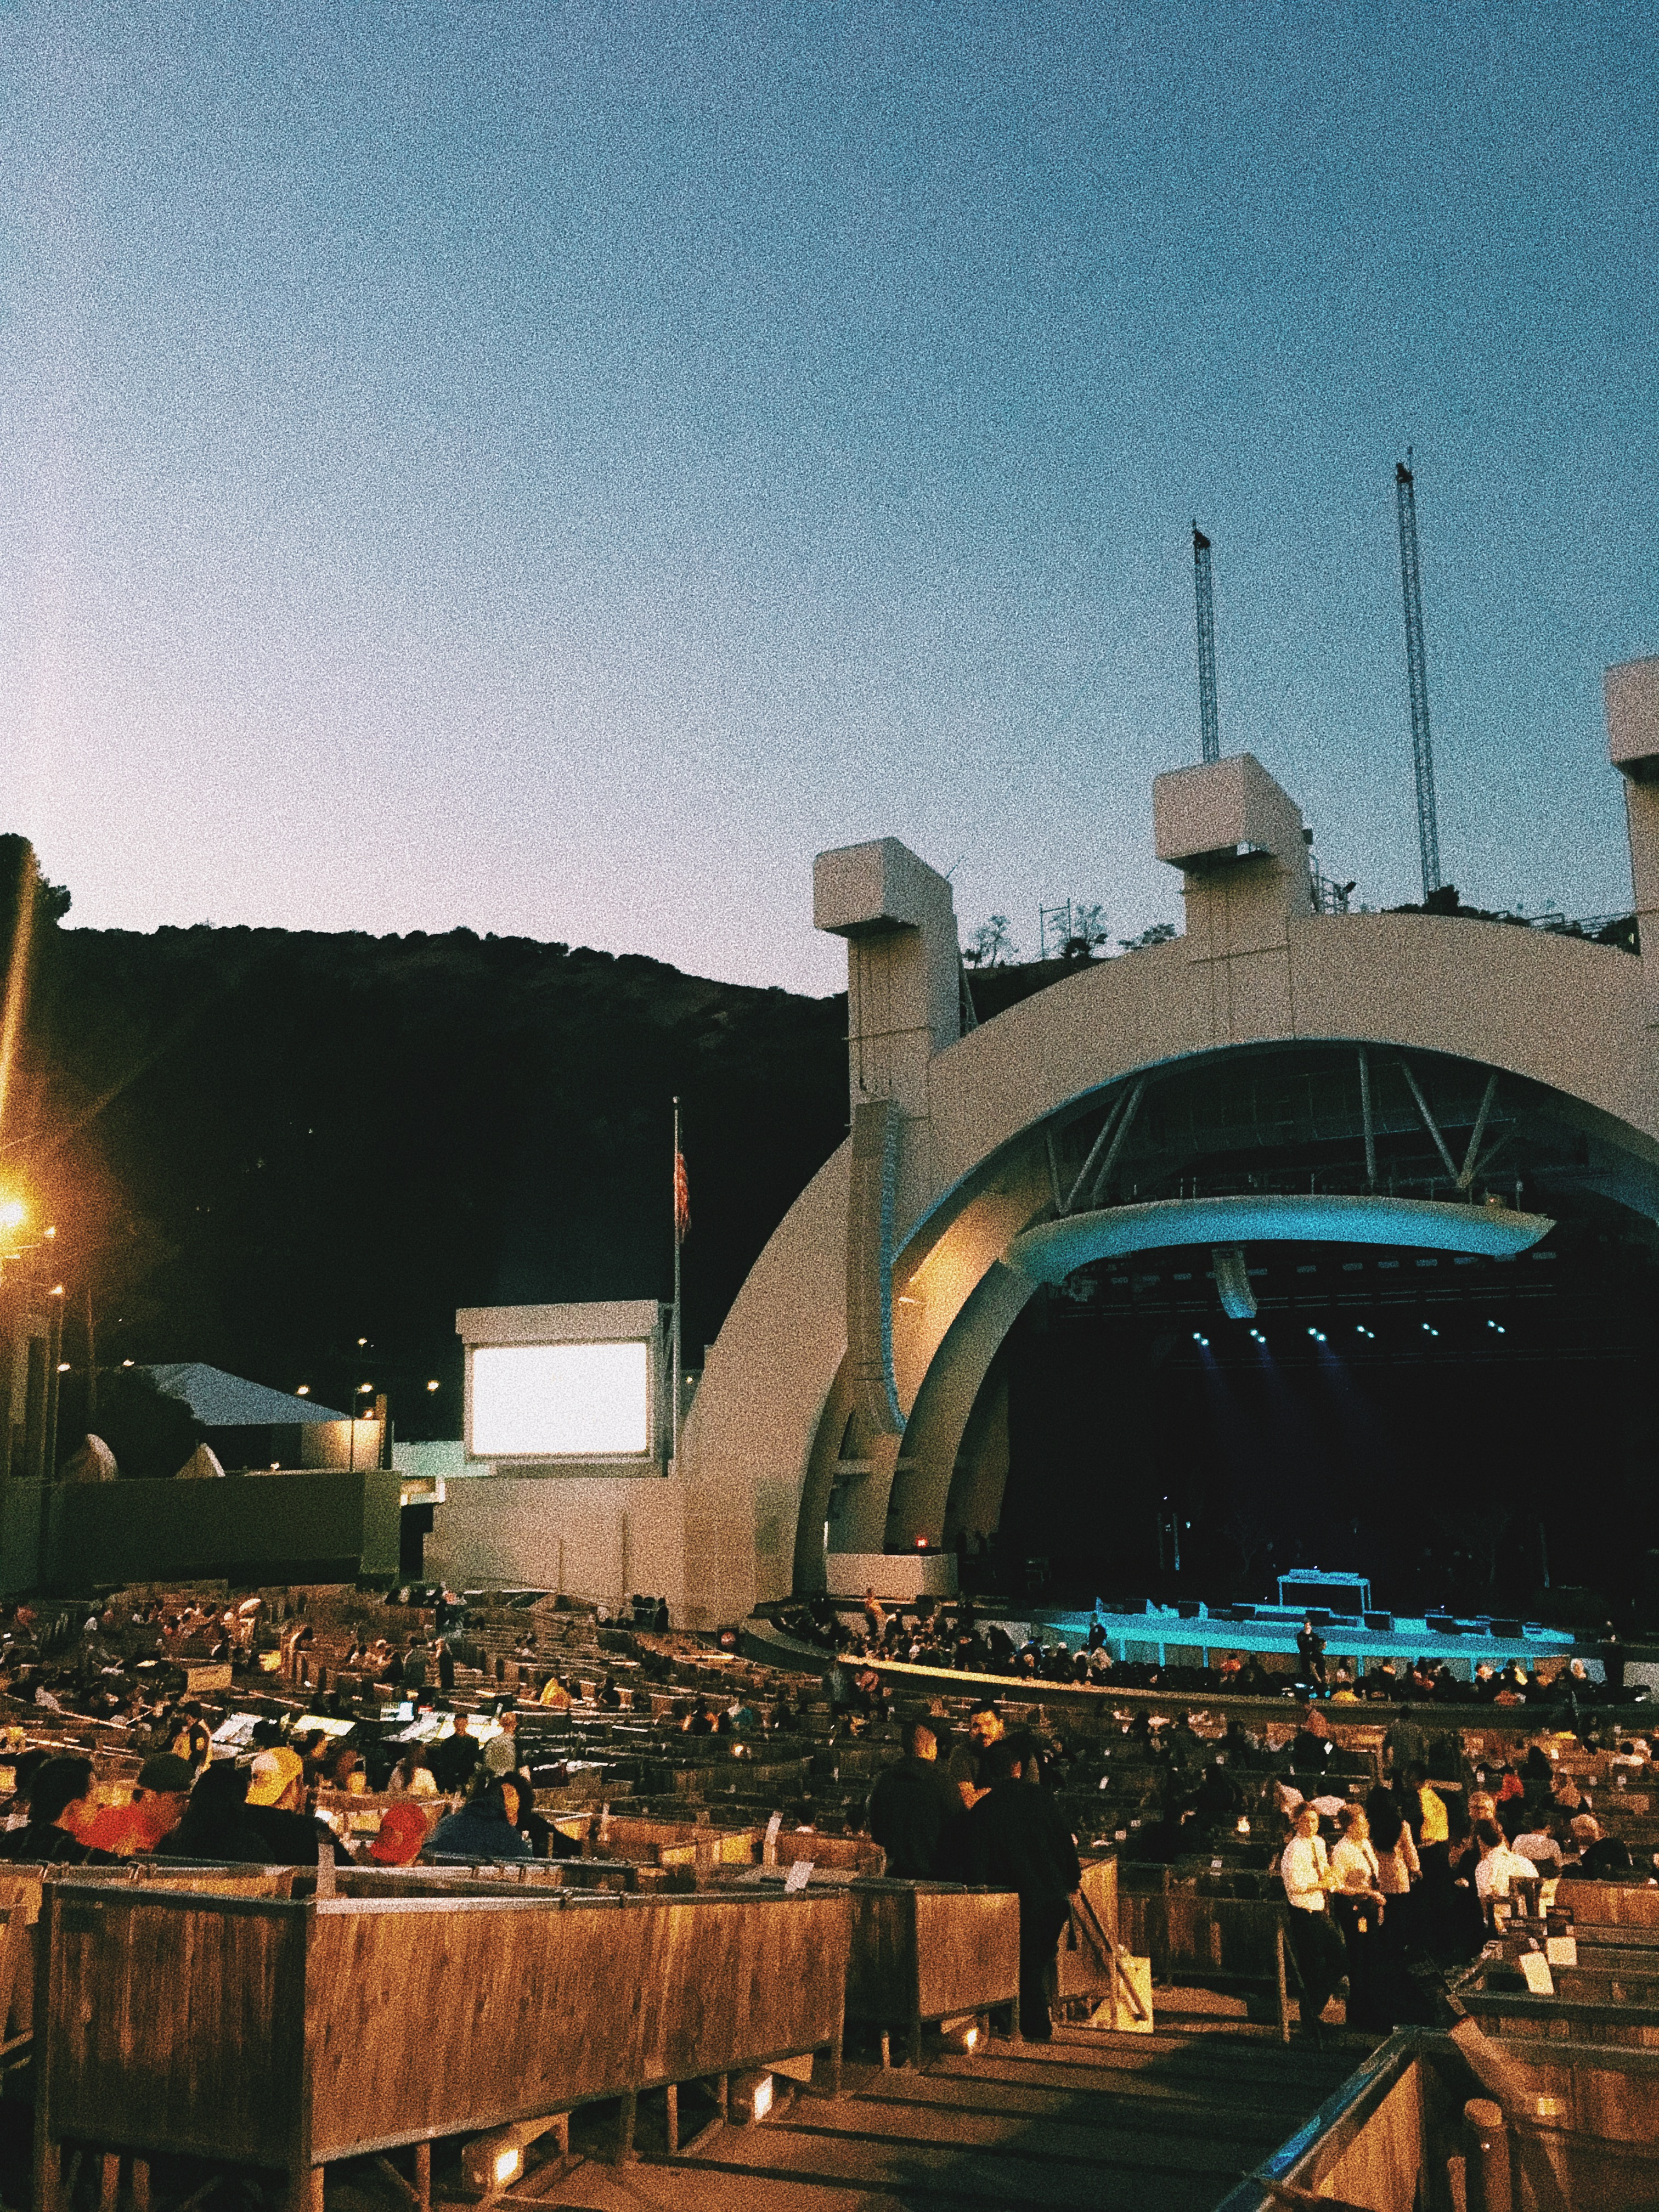 los angeles-hollywood bowl-logic concert